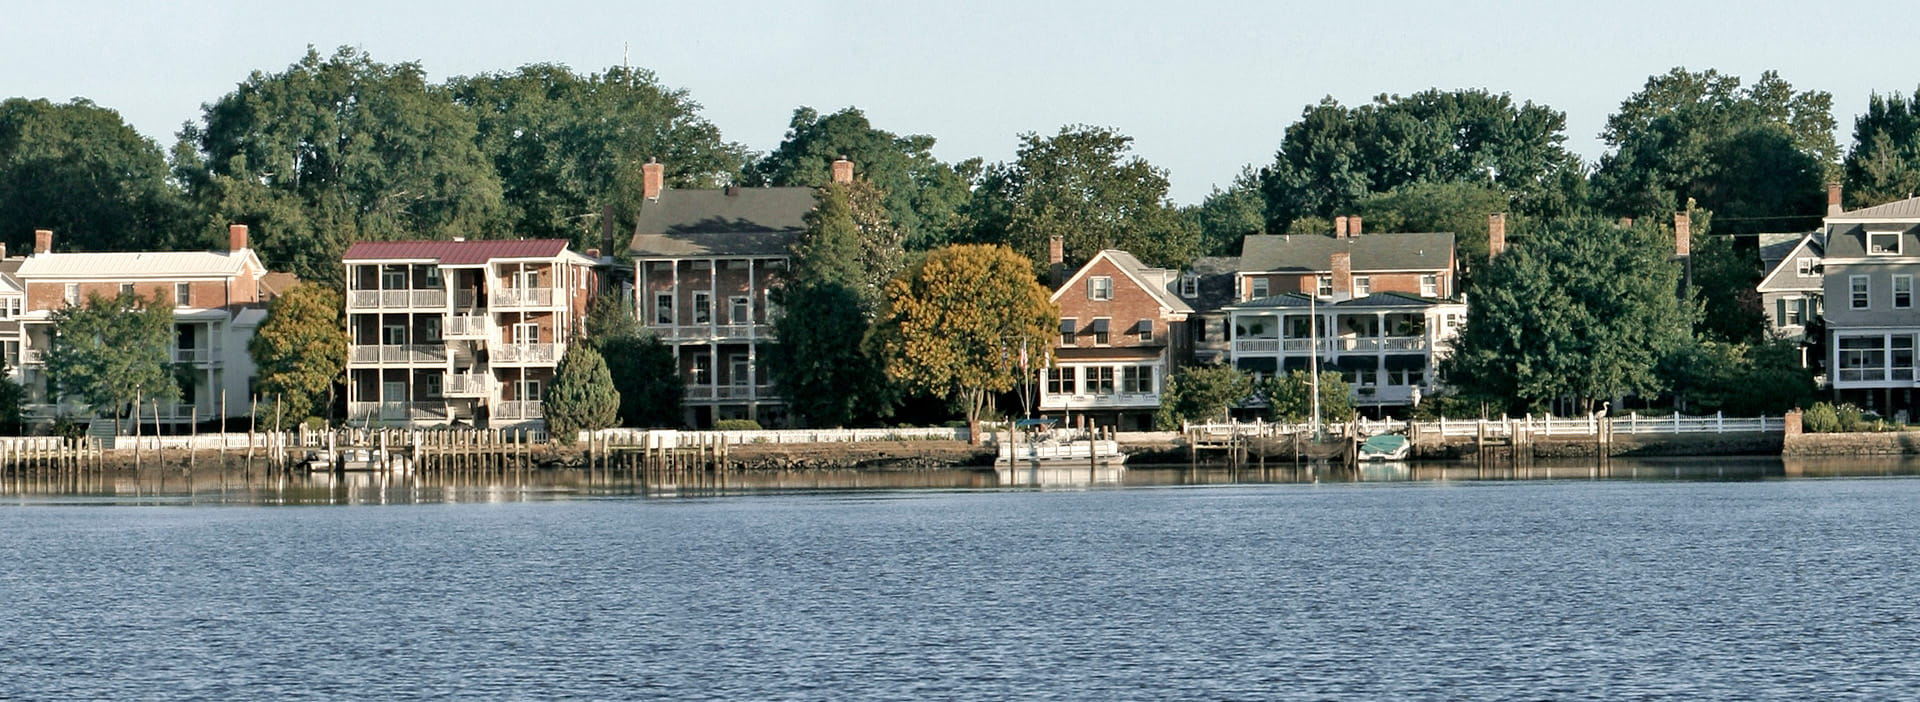 Residential downtown Chestertown on the water.